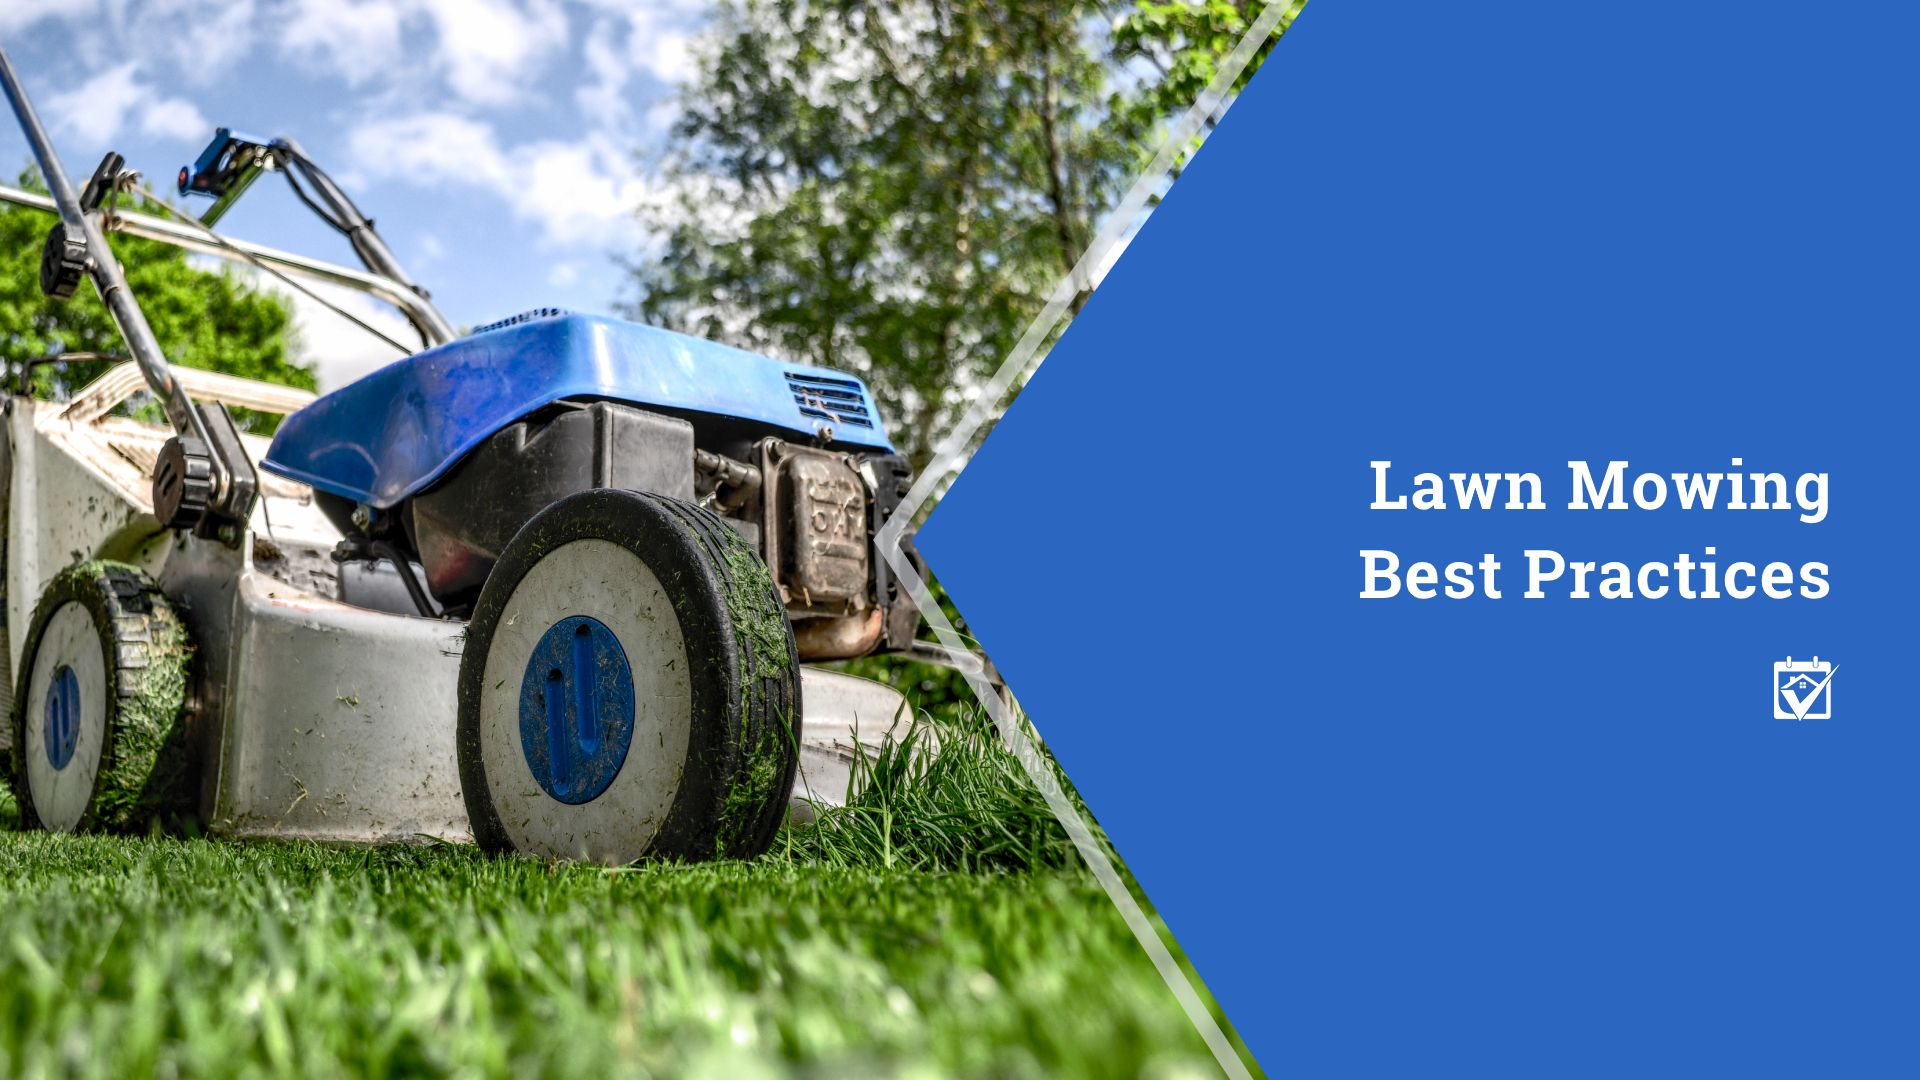 Lawn Mowing Best Practices. in 2020 Mowing, Lawn mower, Lawn